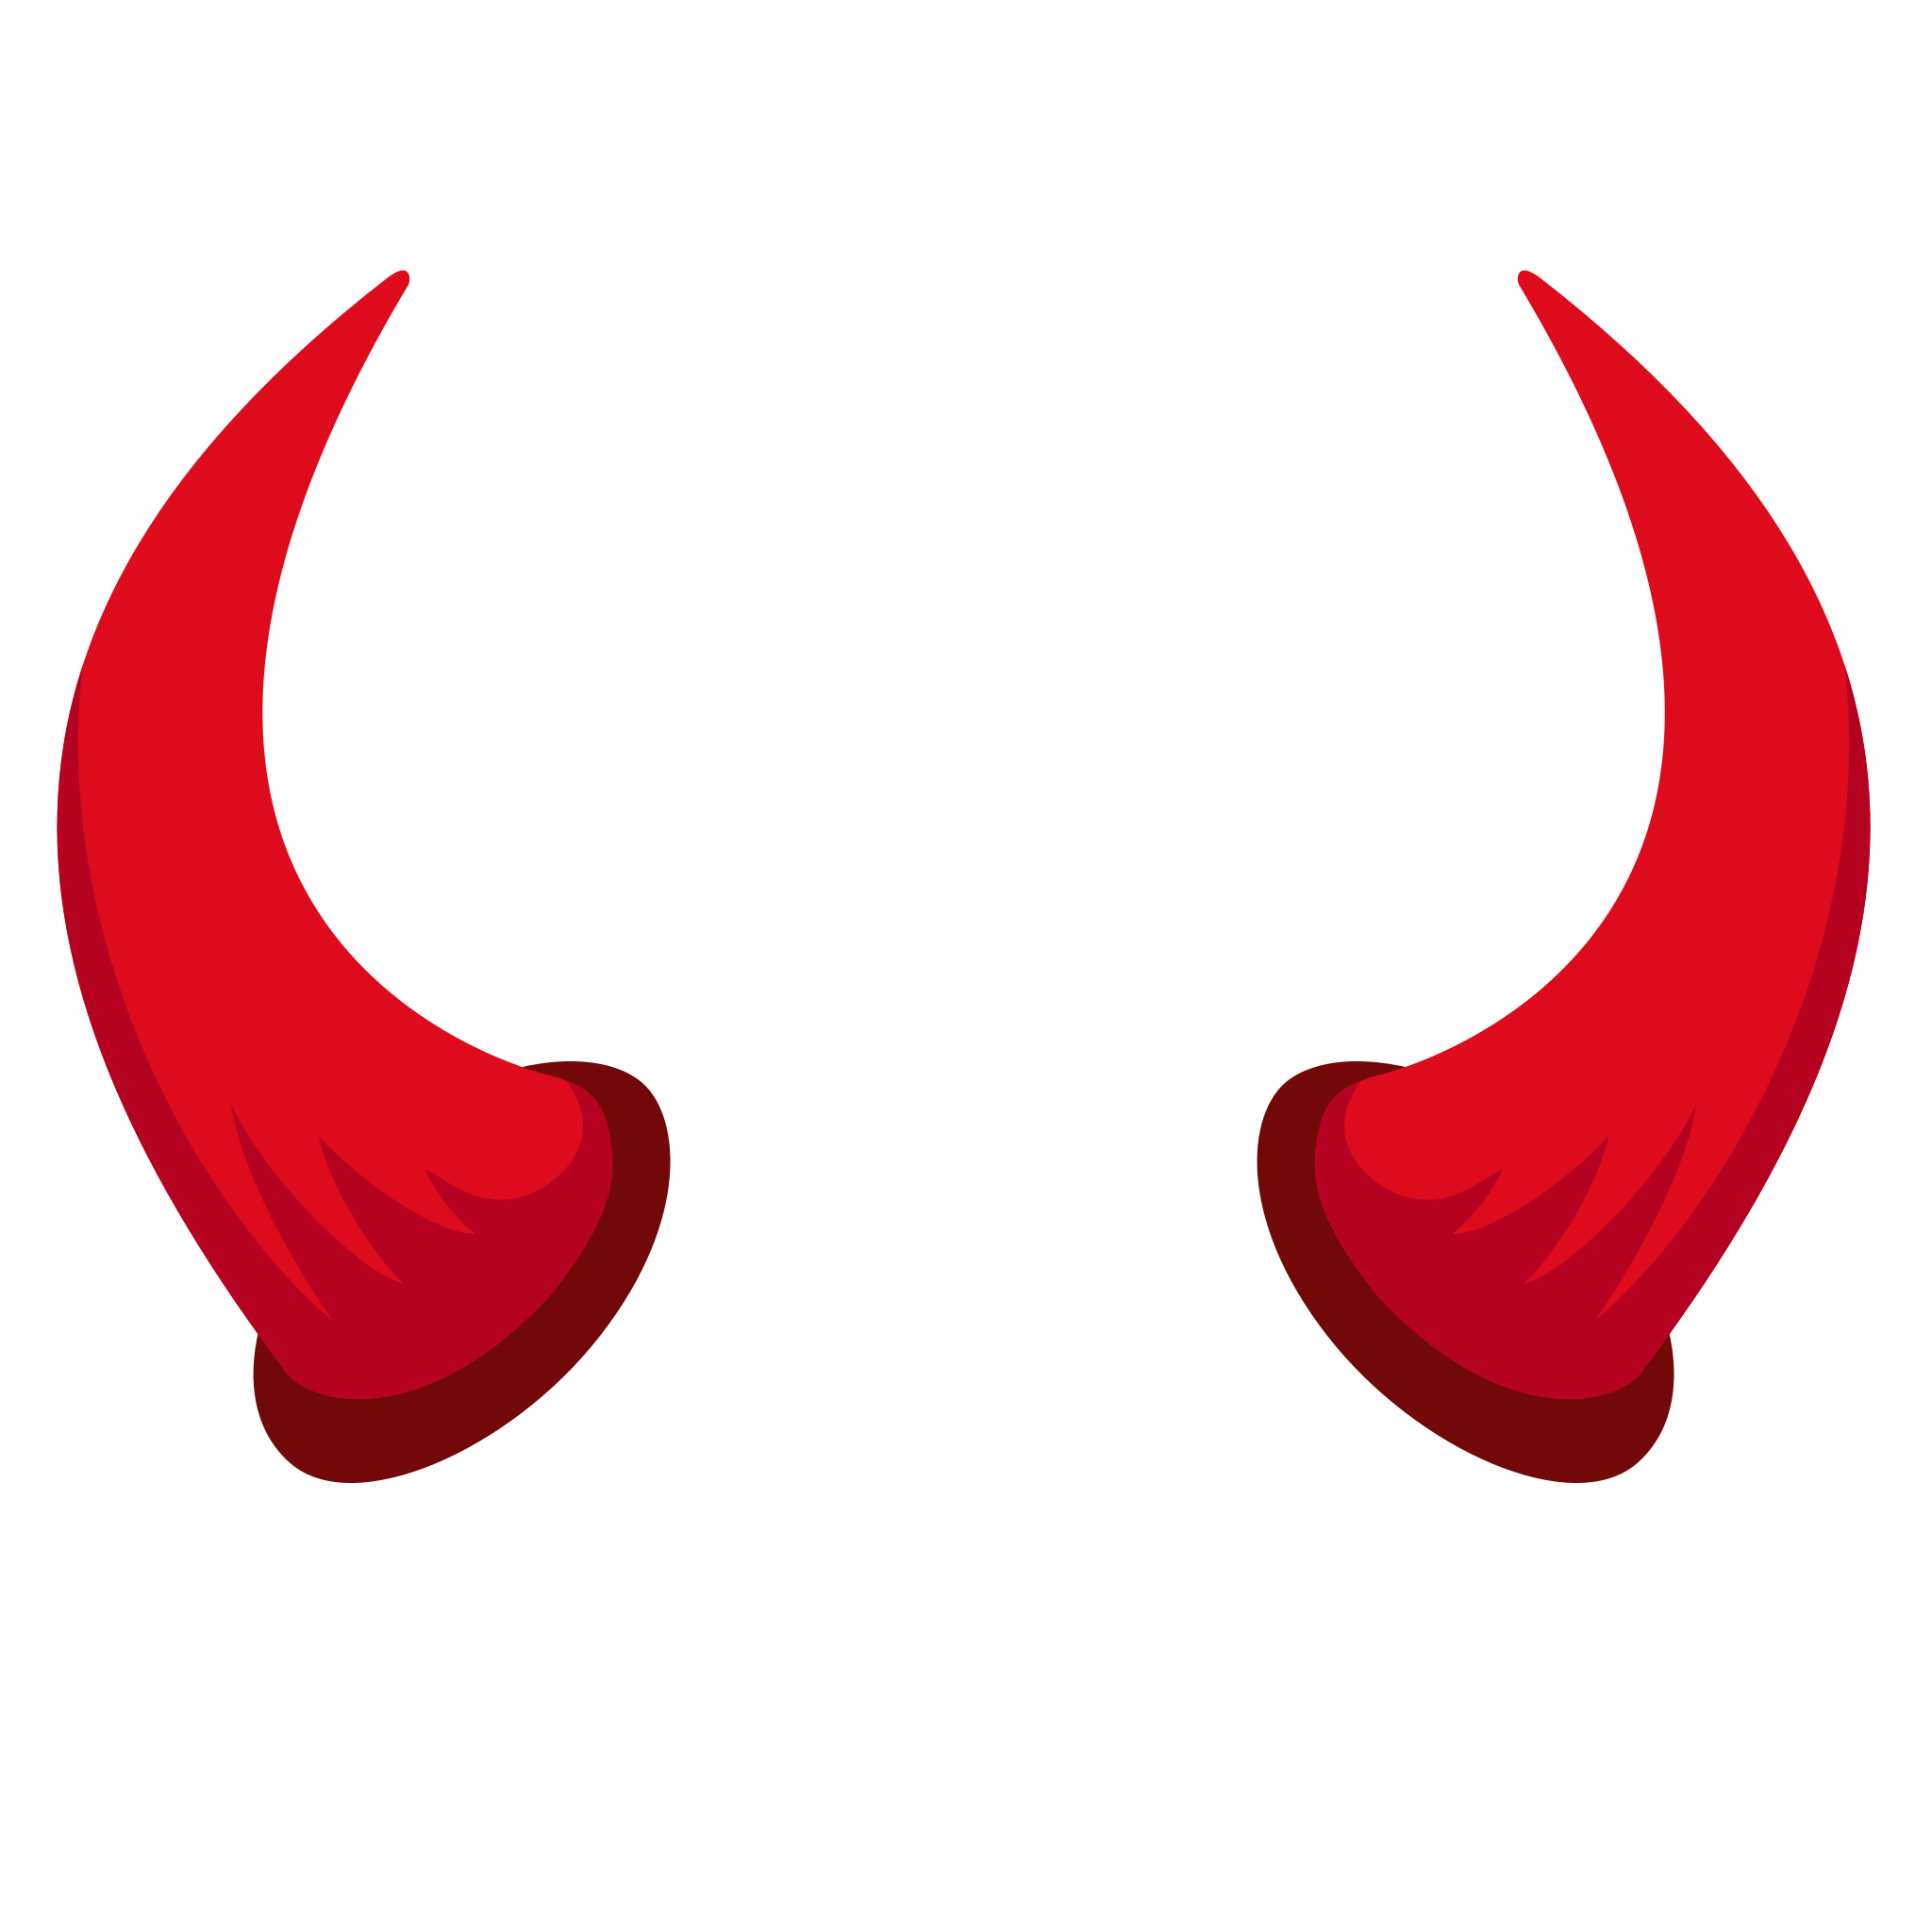 Devil Horns Png | www.pixshark.com - Images Galleries With ... Horns